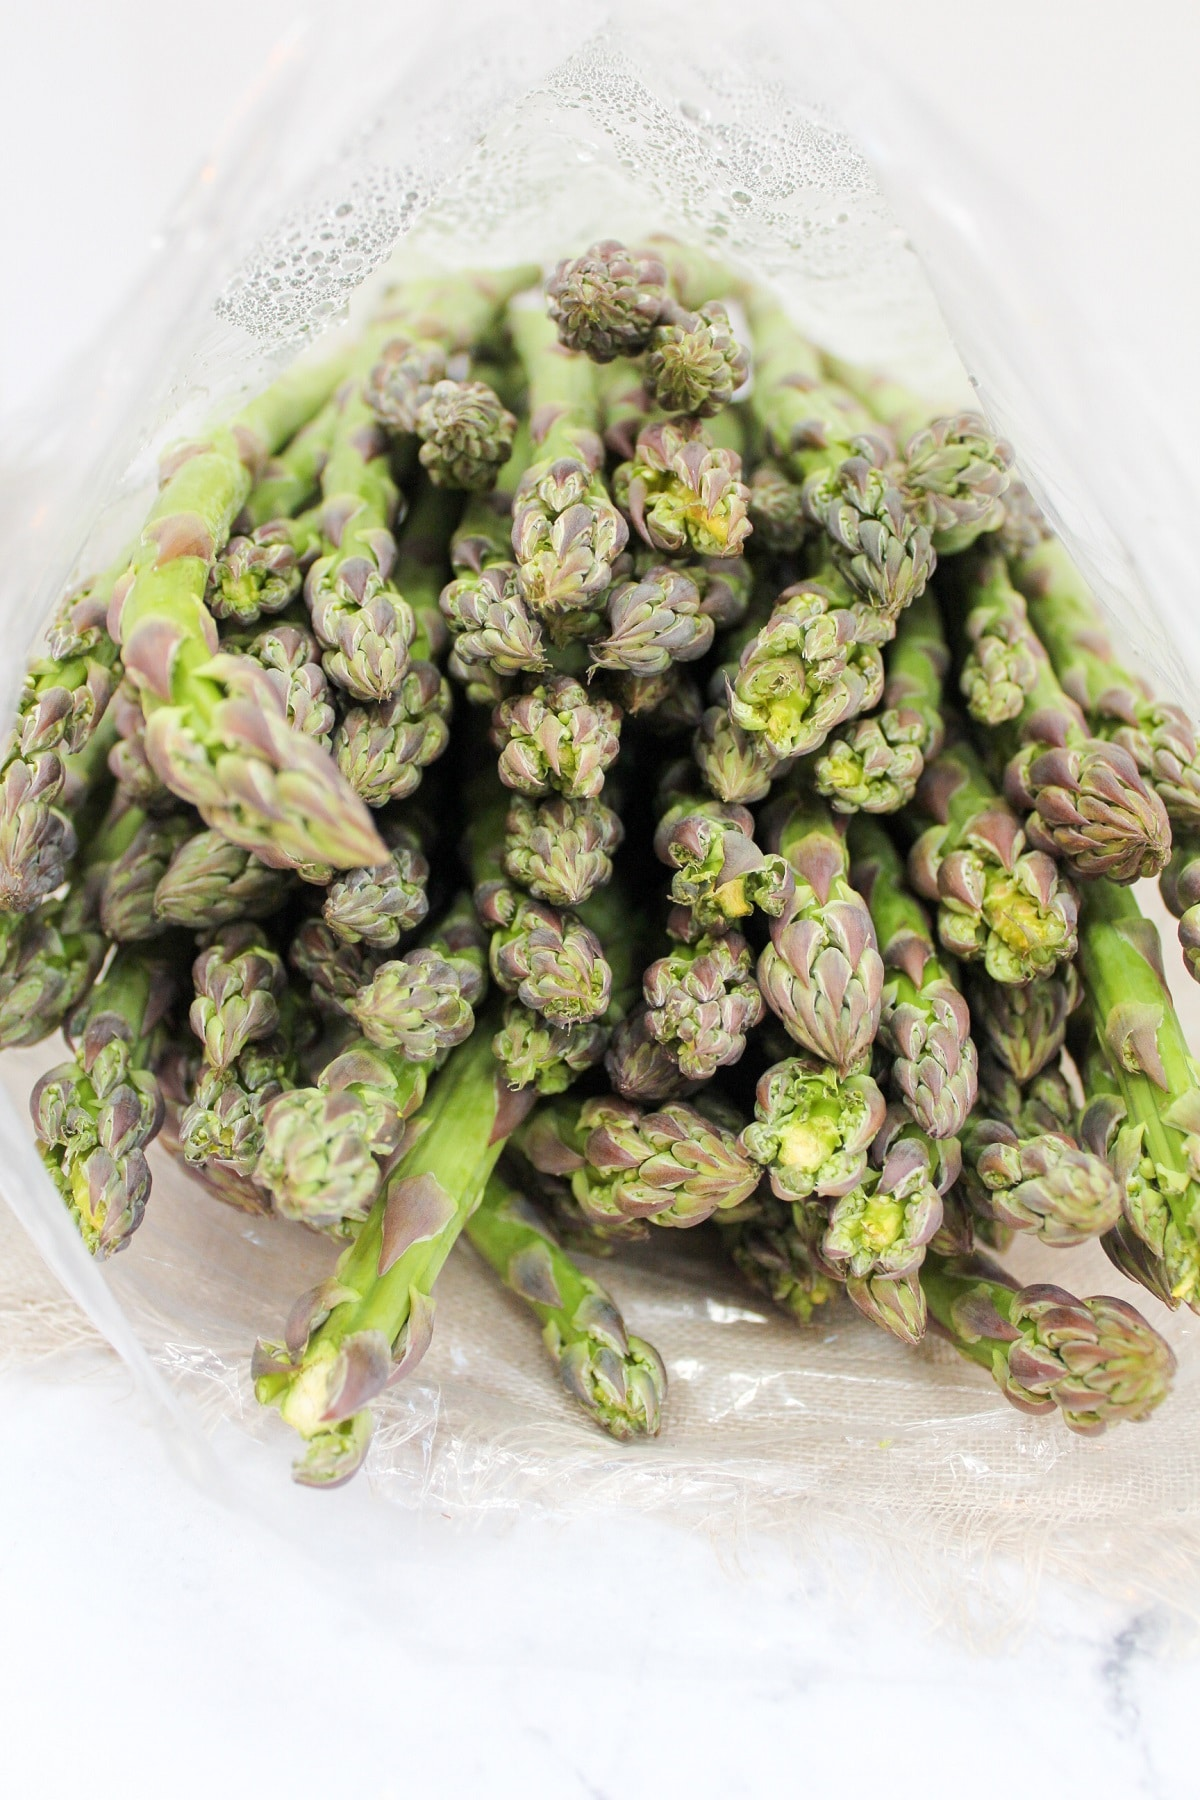 uncooked asparagus